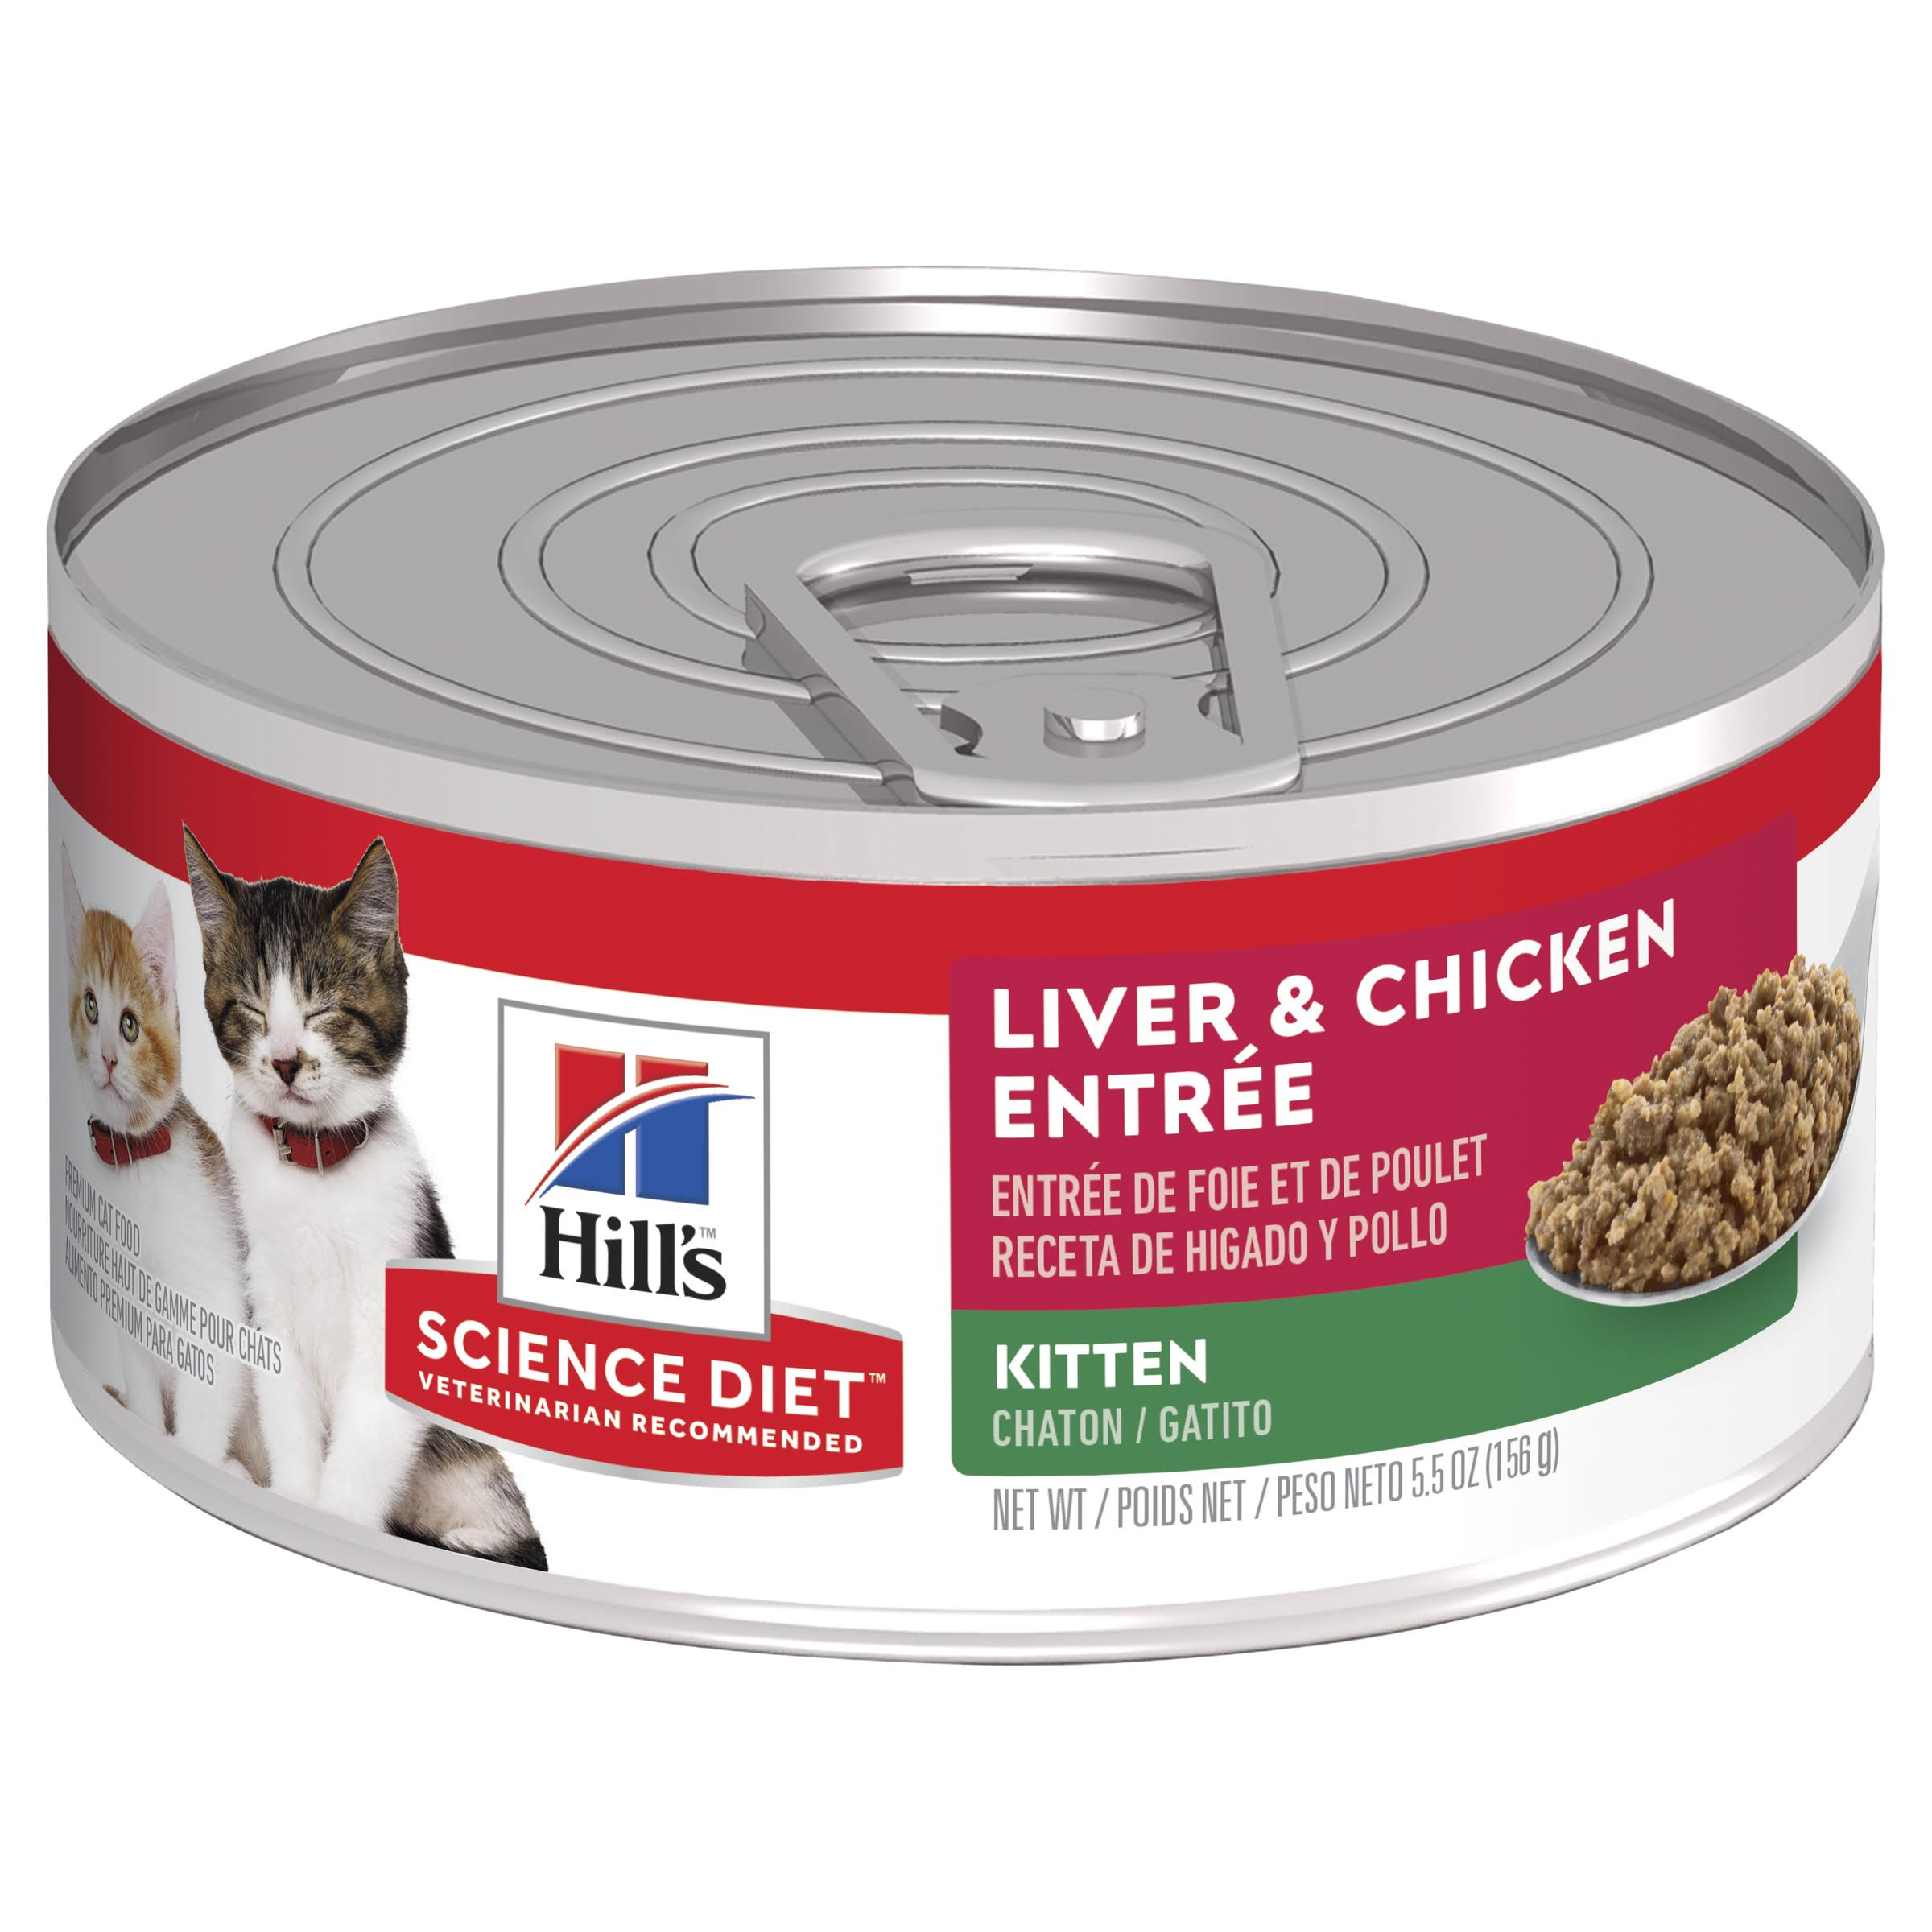 Hill's Science Diet Kitten Food - Liver & Chicken Entree, 5.5oz